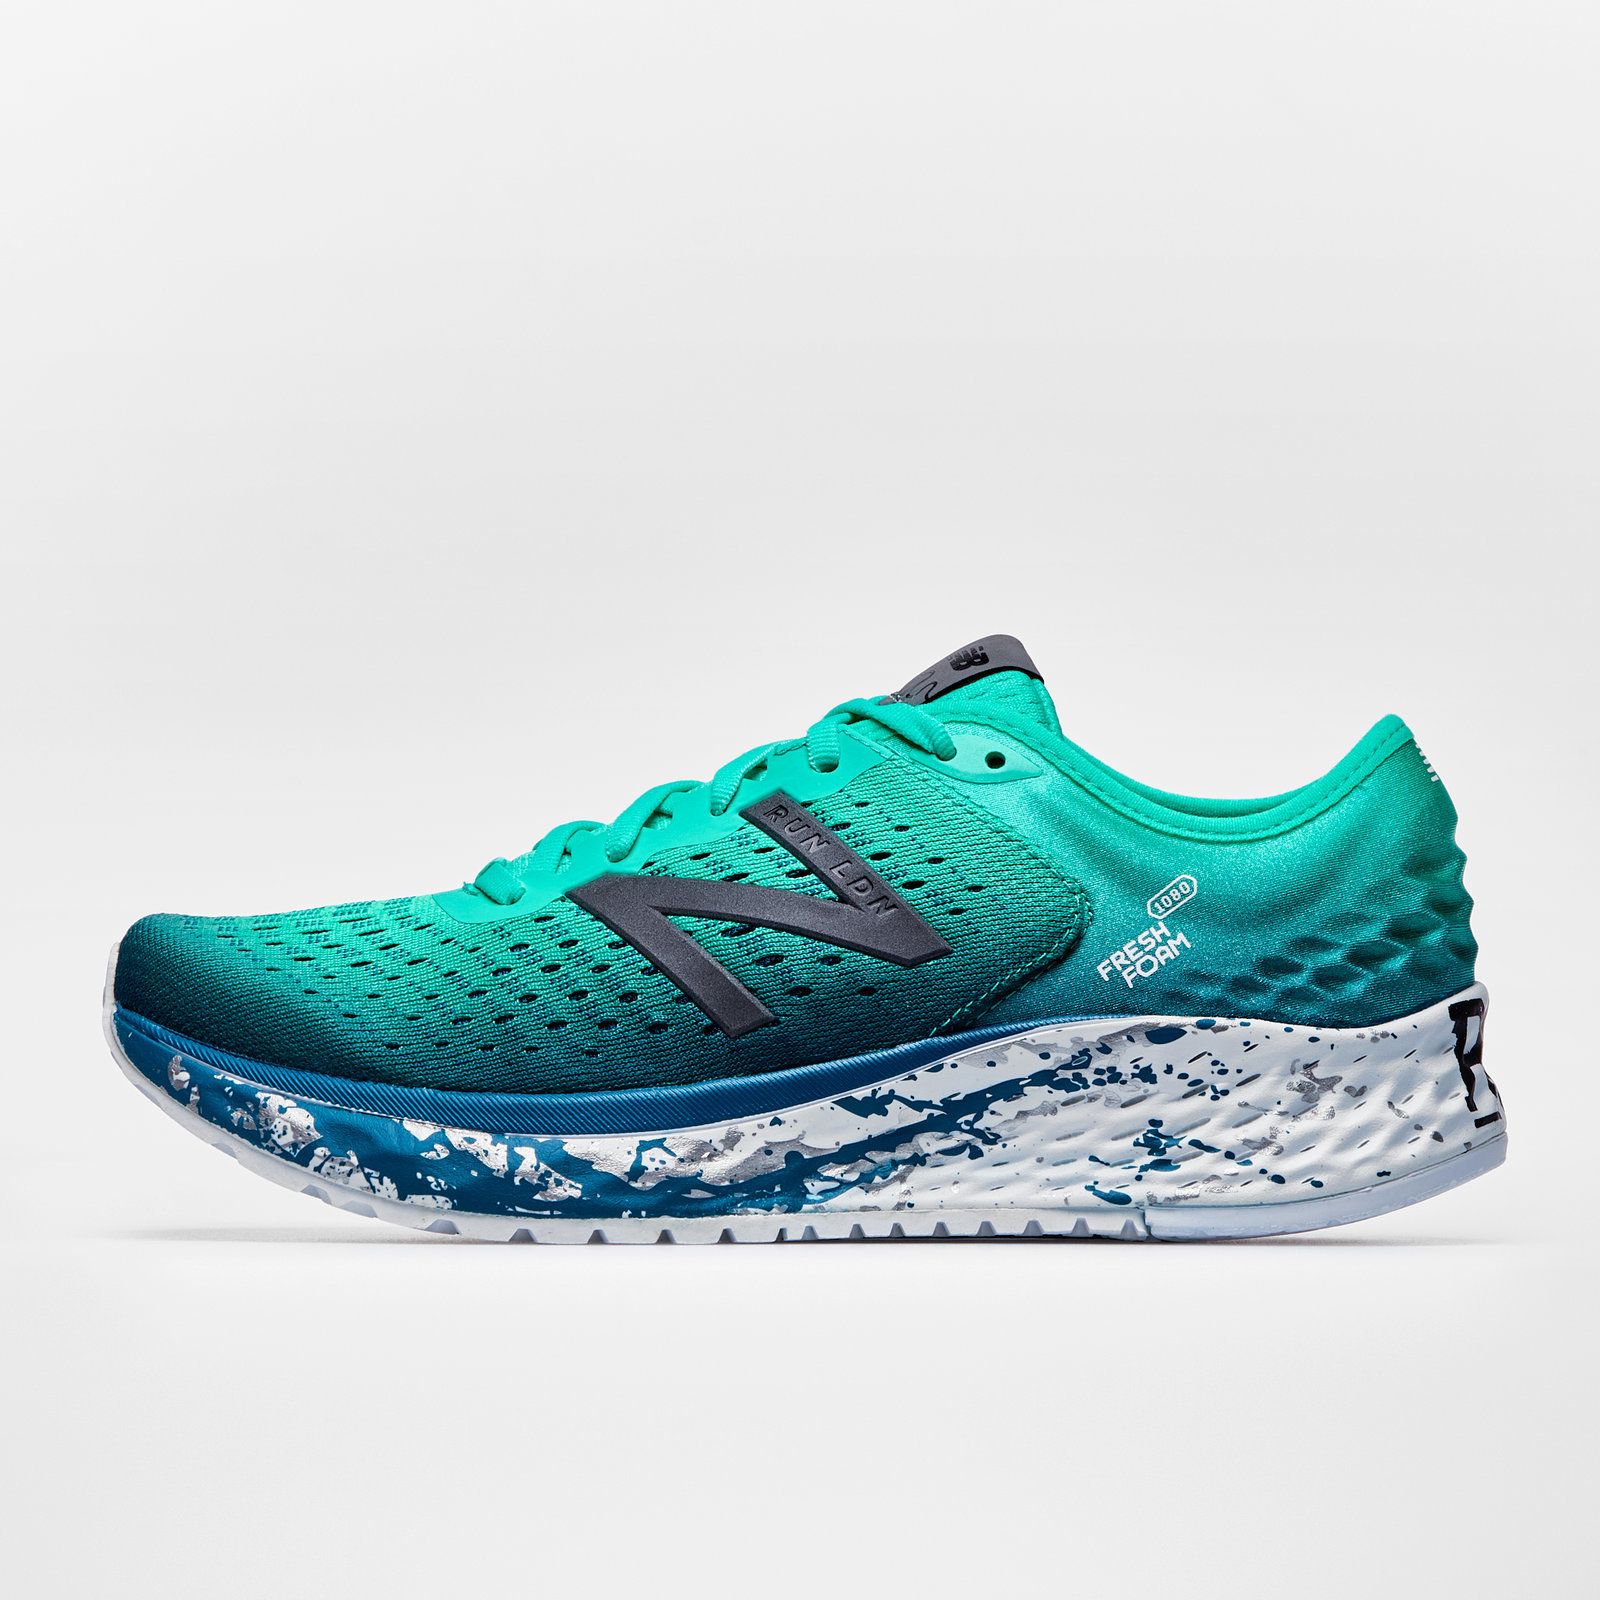 Image of 1080 V9 London Marathon Ladies Running Shoes